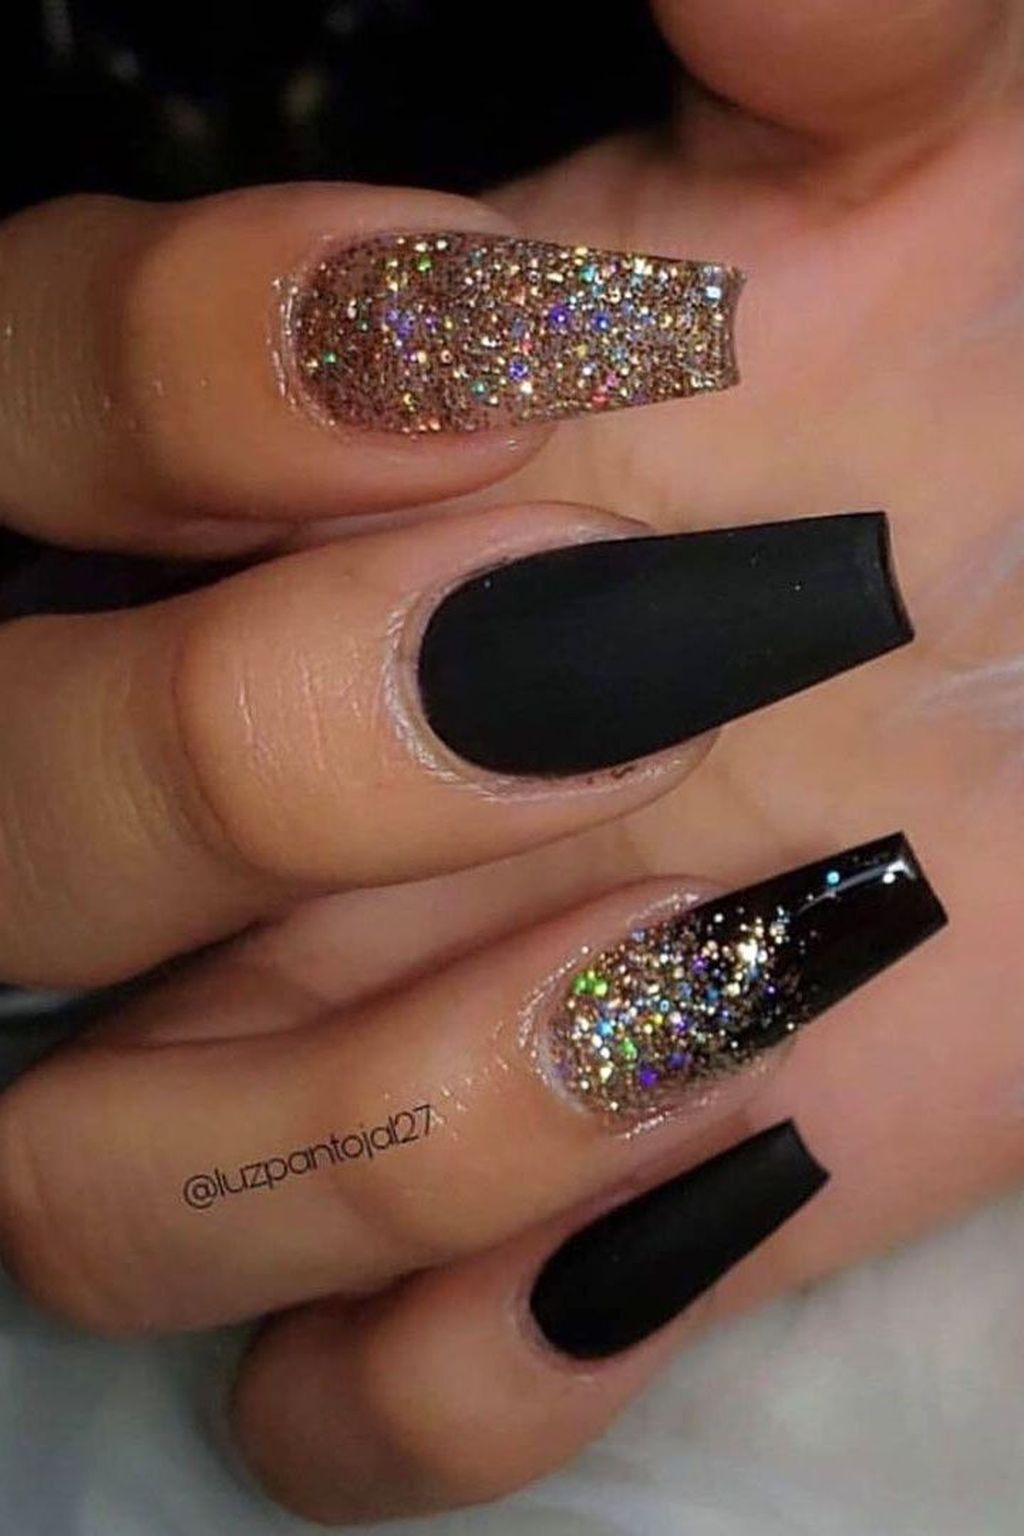 40 Awesome Glitter Acrylic Nail Art Designs Ideas For Holiday Parties In 2020 Silver Glitter Nails Black Gold Nails Gold Glitter Nails